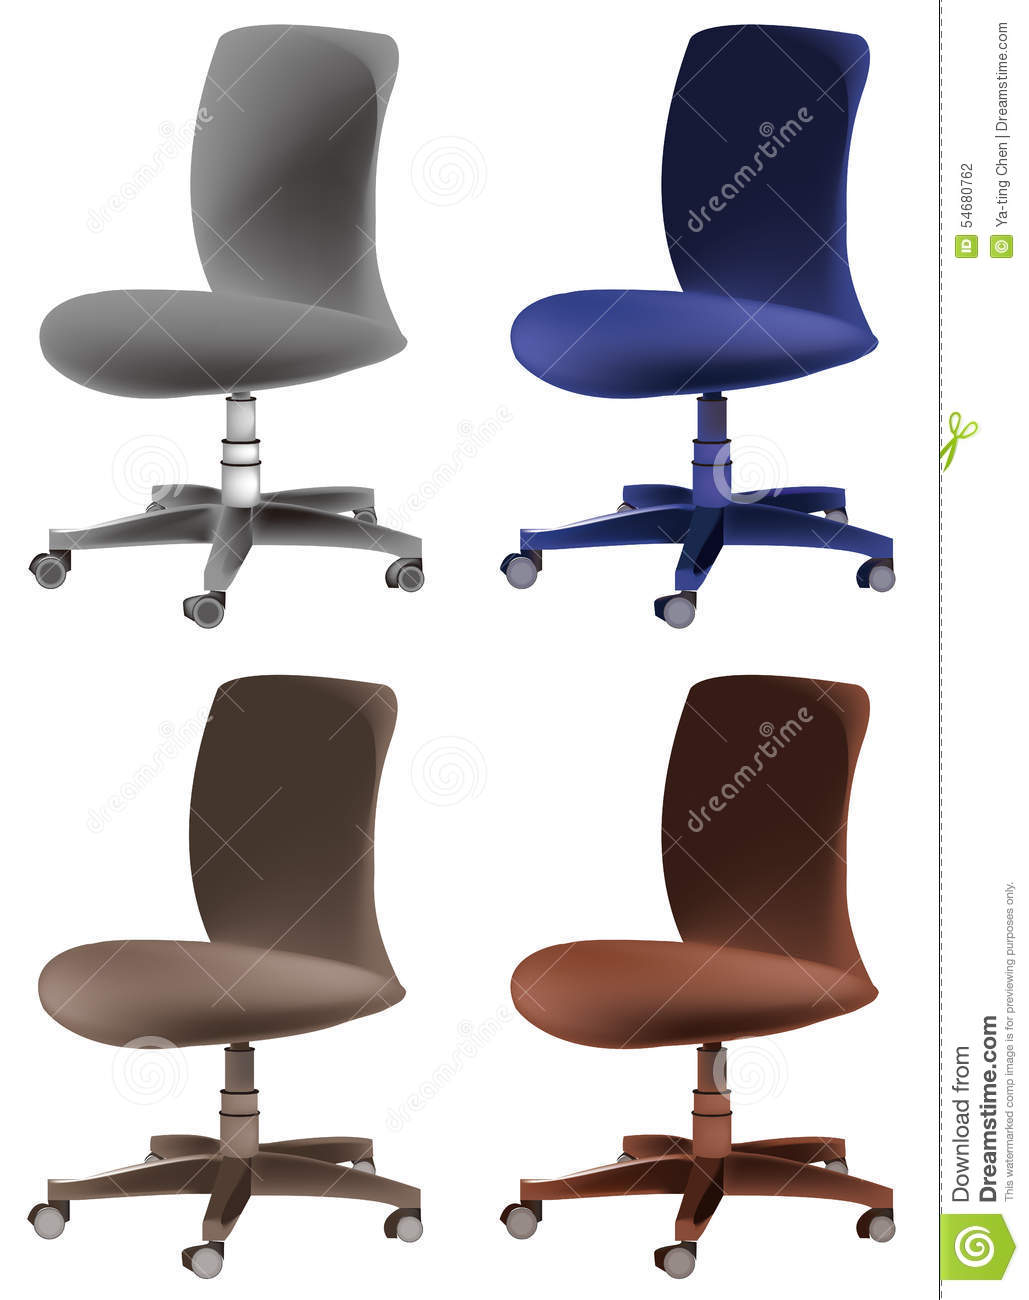 office chair illustration wayfair covers stock image 54680762